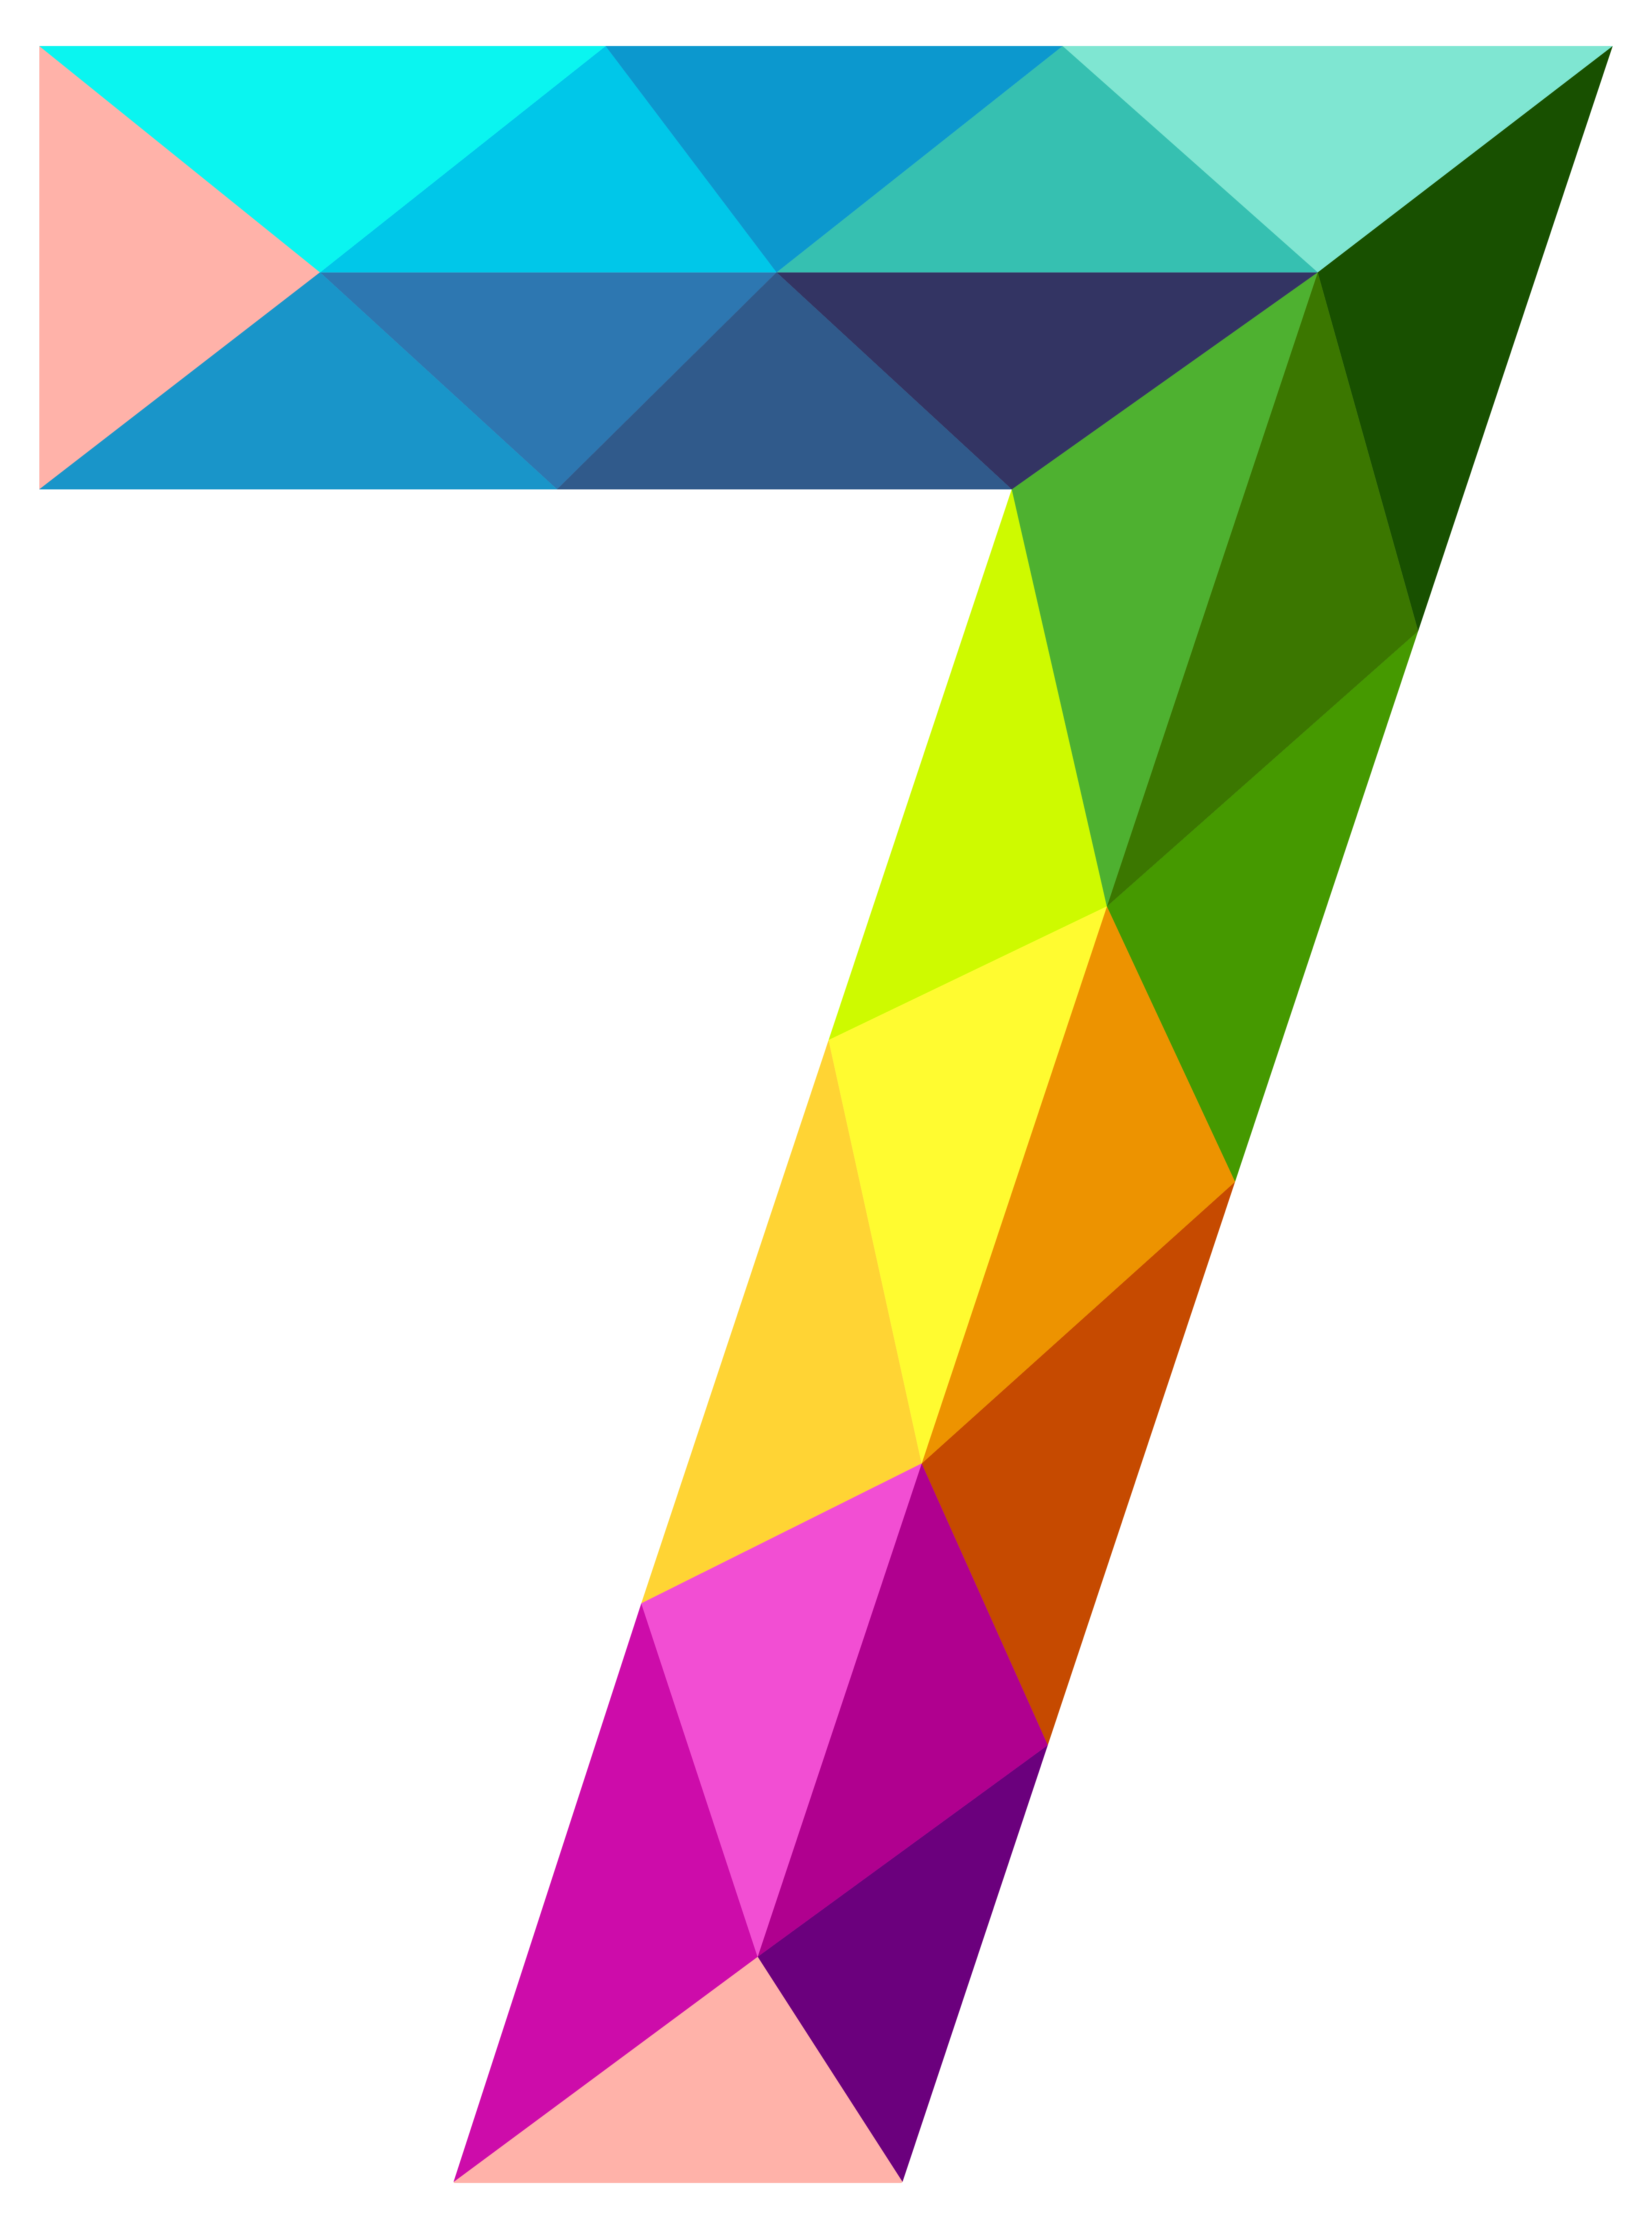 Clipart umbrella triangular. Colourful triangles number seven